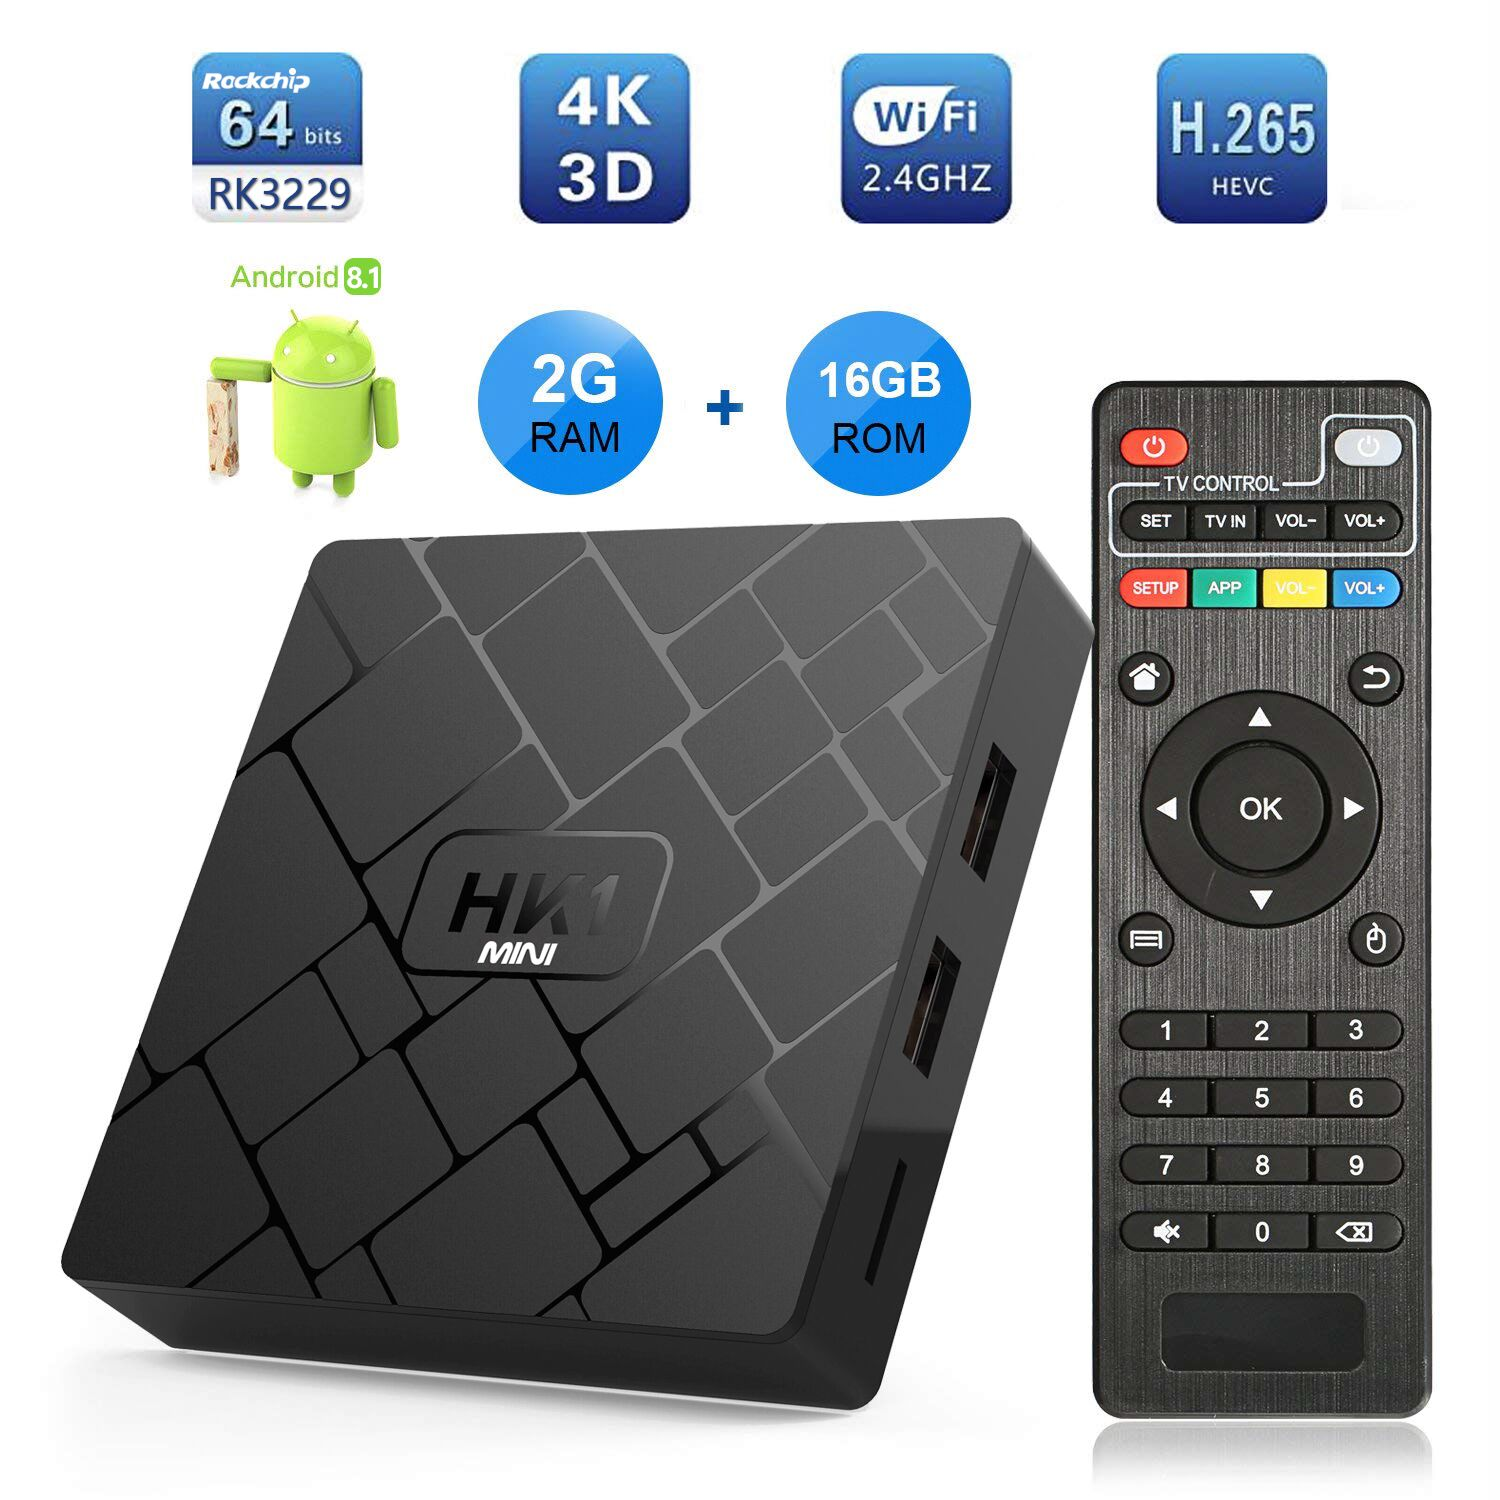 Tv Receivers New Hk1 Mini Smart Tv Box Android 8.1/android 9.0 2gb+16gb Rk3229 Quad-core Wifi 2.4g 4k 3d Hk1mini Google Netflix Set-top Box Making Things Convenient For Customers